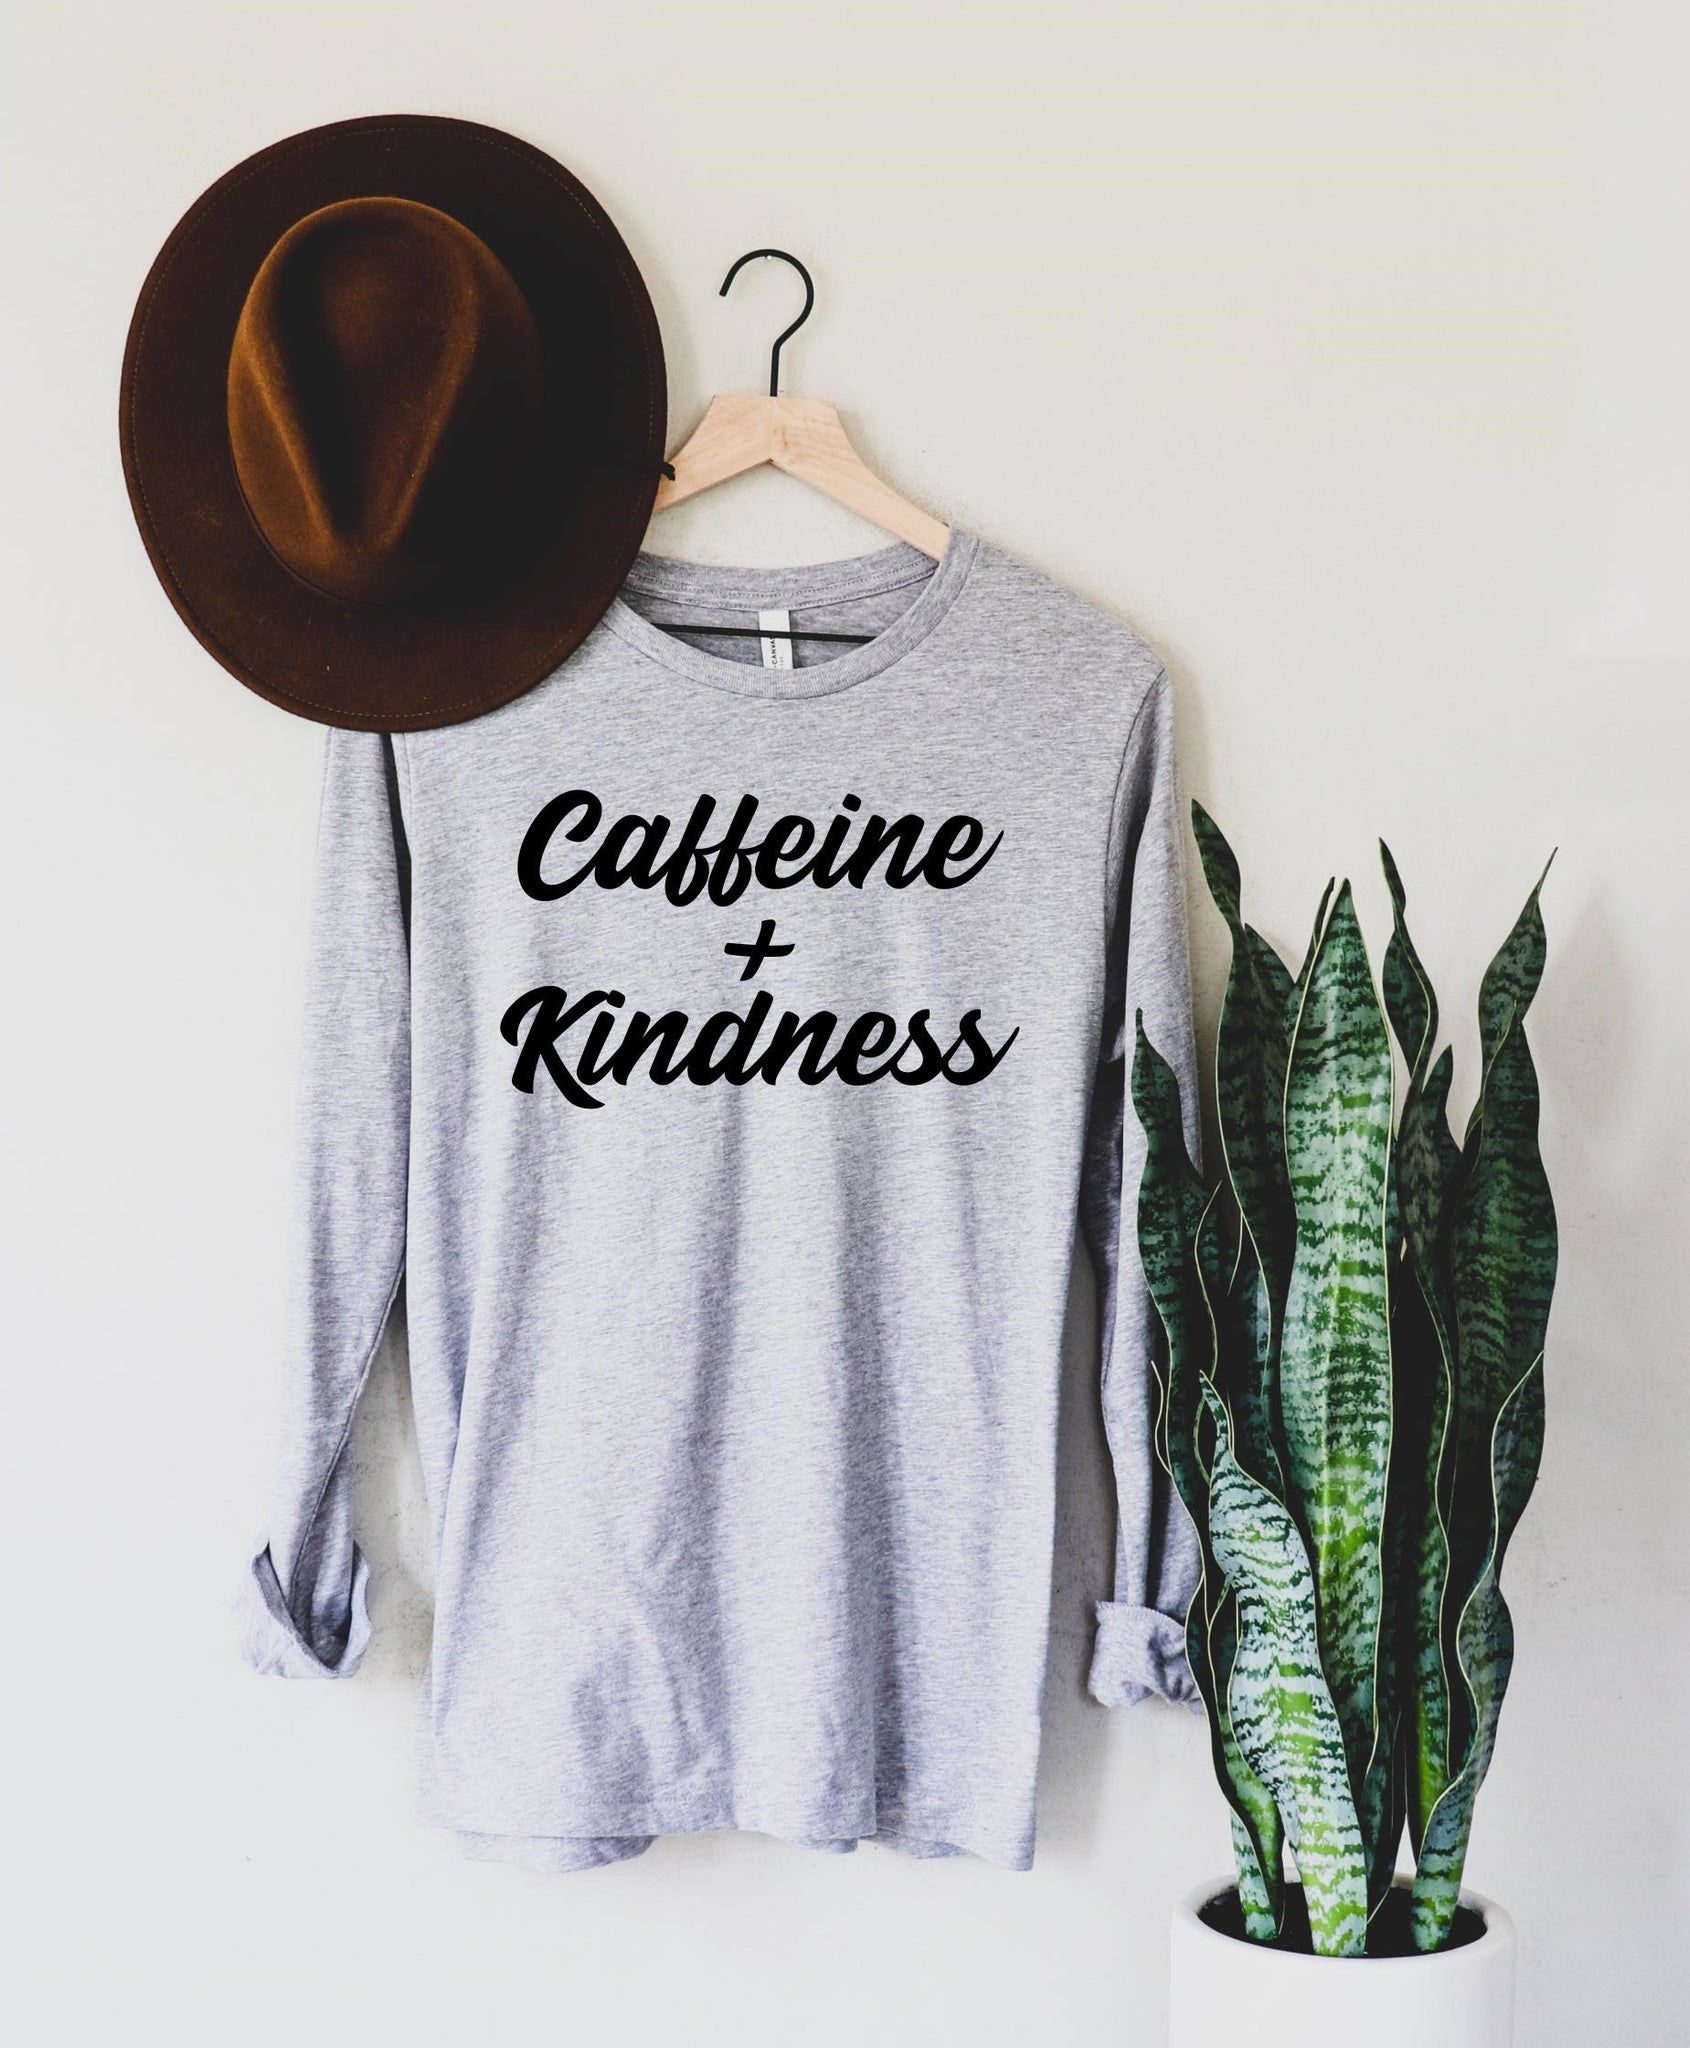 Caffeine + Kindness - Long Sleeve Grey